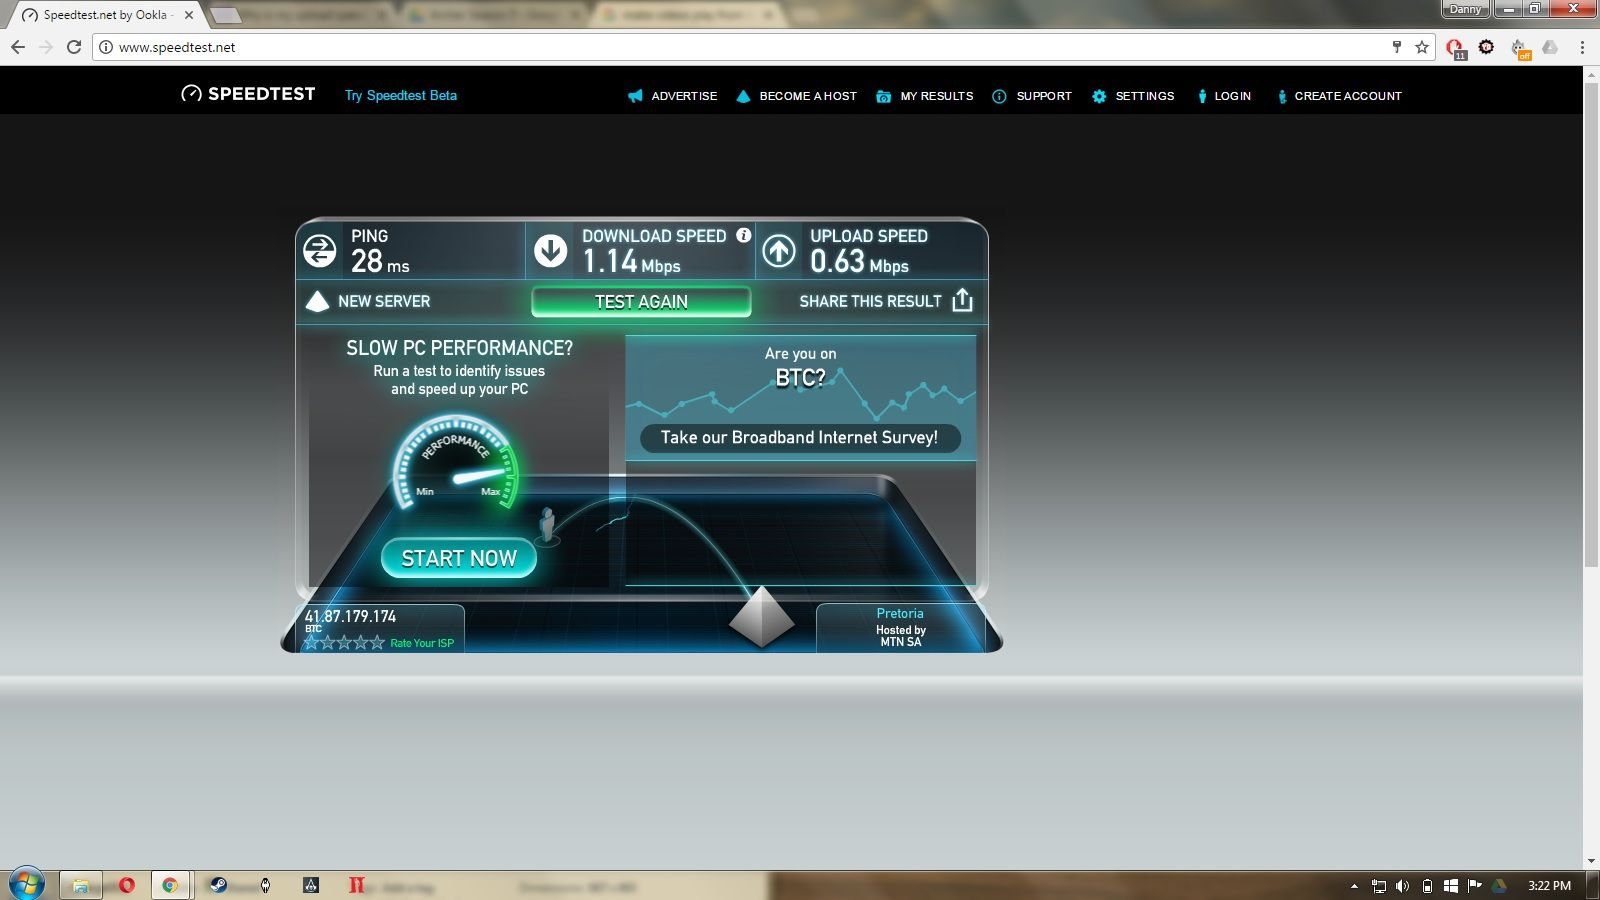 Why is my upload speed much faster than my download speed